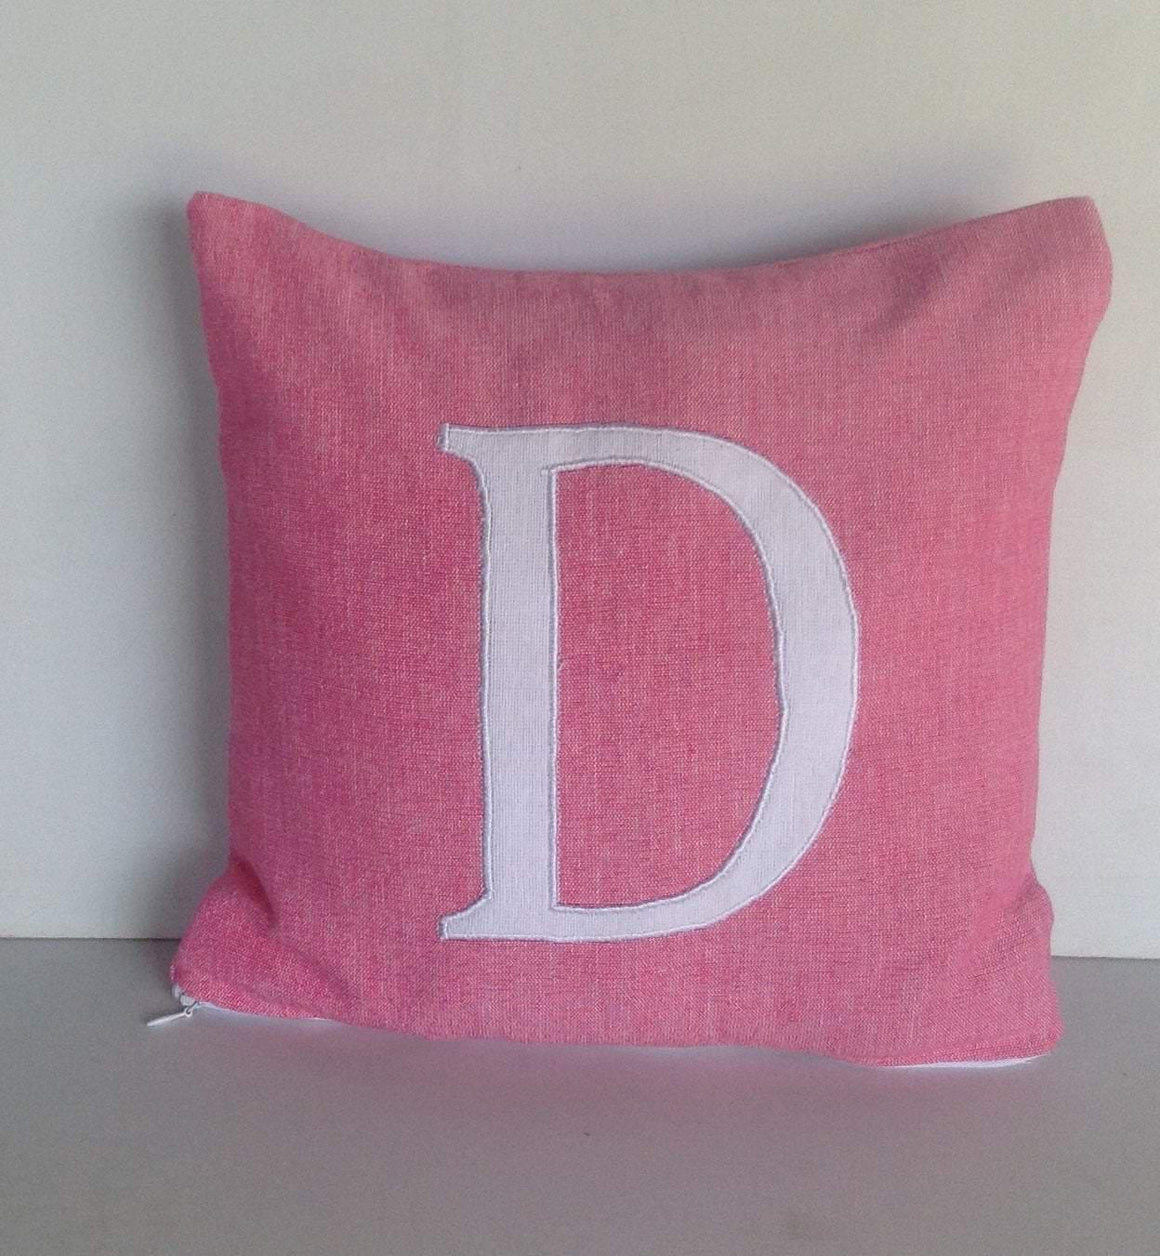 20% OFF Monogram pillows for kids, Pink Nursery decor, Gifts for Her, Home Decor, Monogram Nursery Decor, 18 x18 Monogram Pillow Covers - Snazzy Living